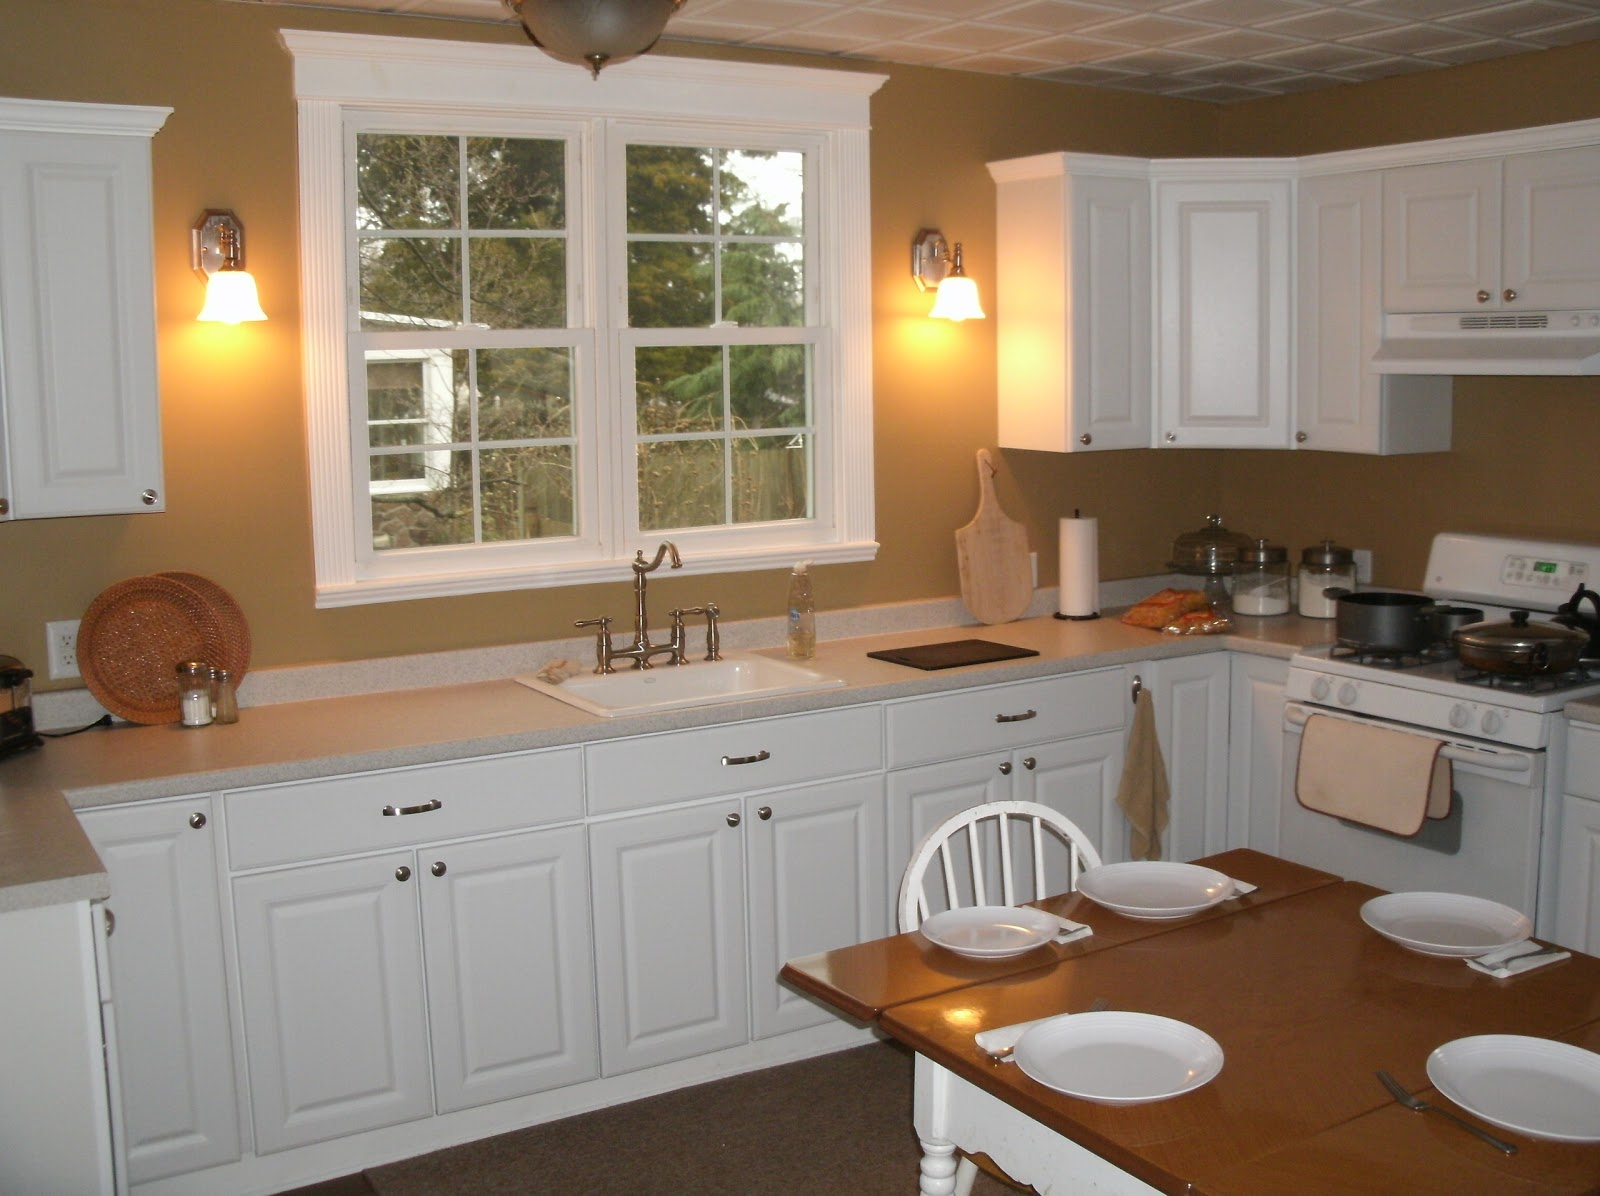 Home remodeling and improvements tips and how to 39 s for Kitchen renovation styles